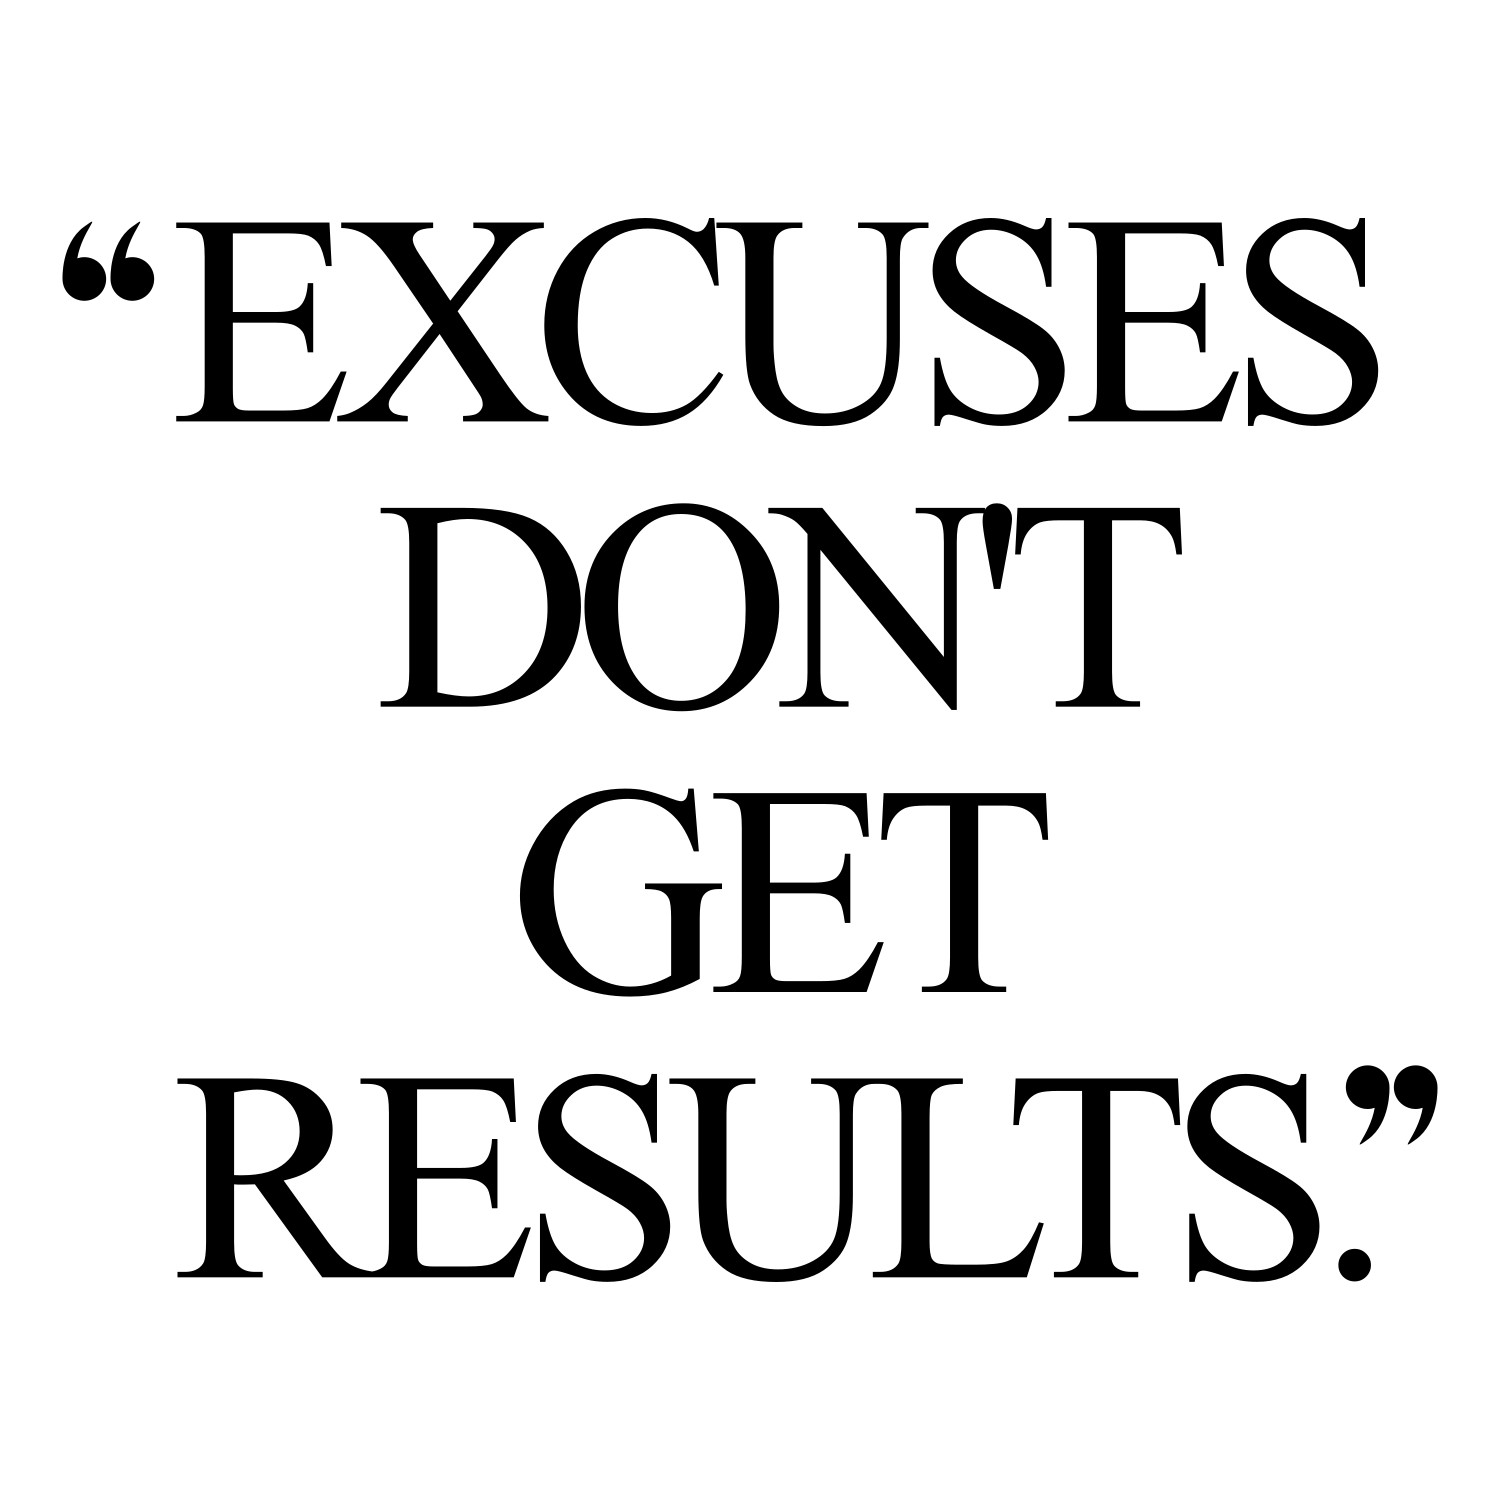 Excuses don't get results! Browse our collection of motivational exercise and weight loss quotes and get instant health and fitness inspiration. Transform positive thoughts into positive actions and get fit, healthy and happy! https://www.spotebi.com/workout-motivation/excuses-dont-get-results-exercise-and-weight-loss-motivational-quote/